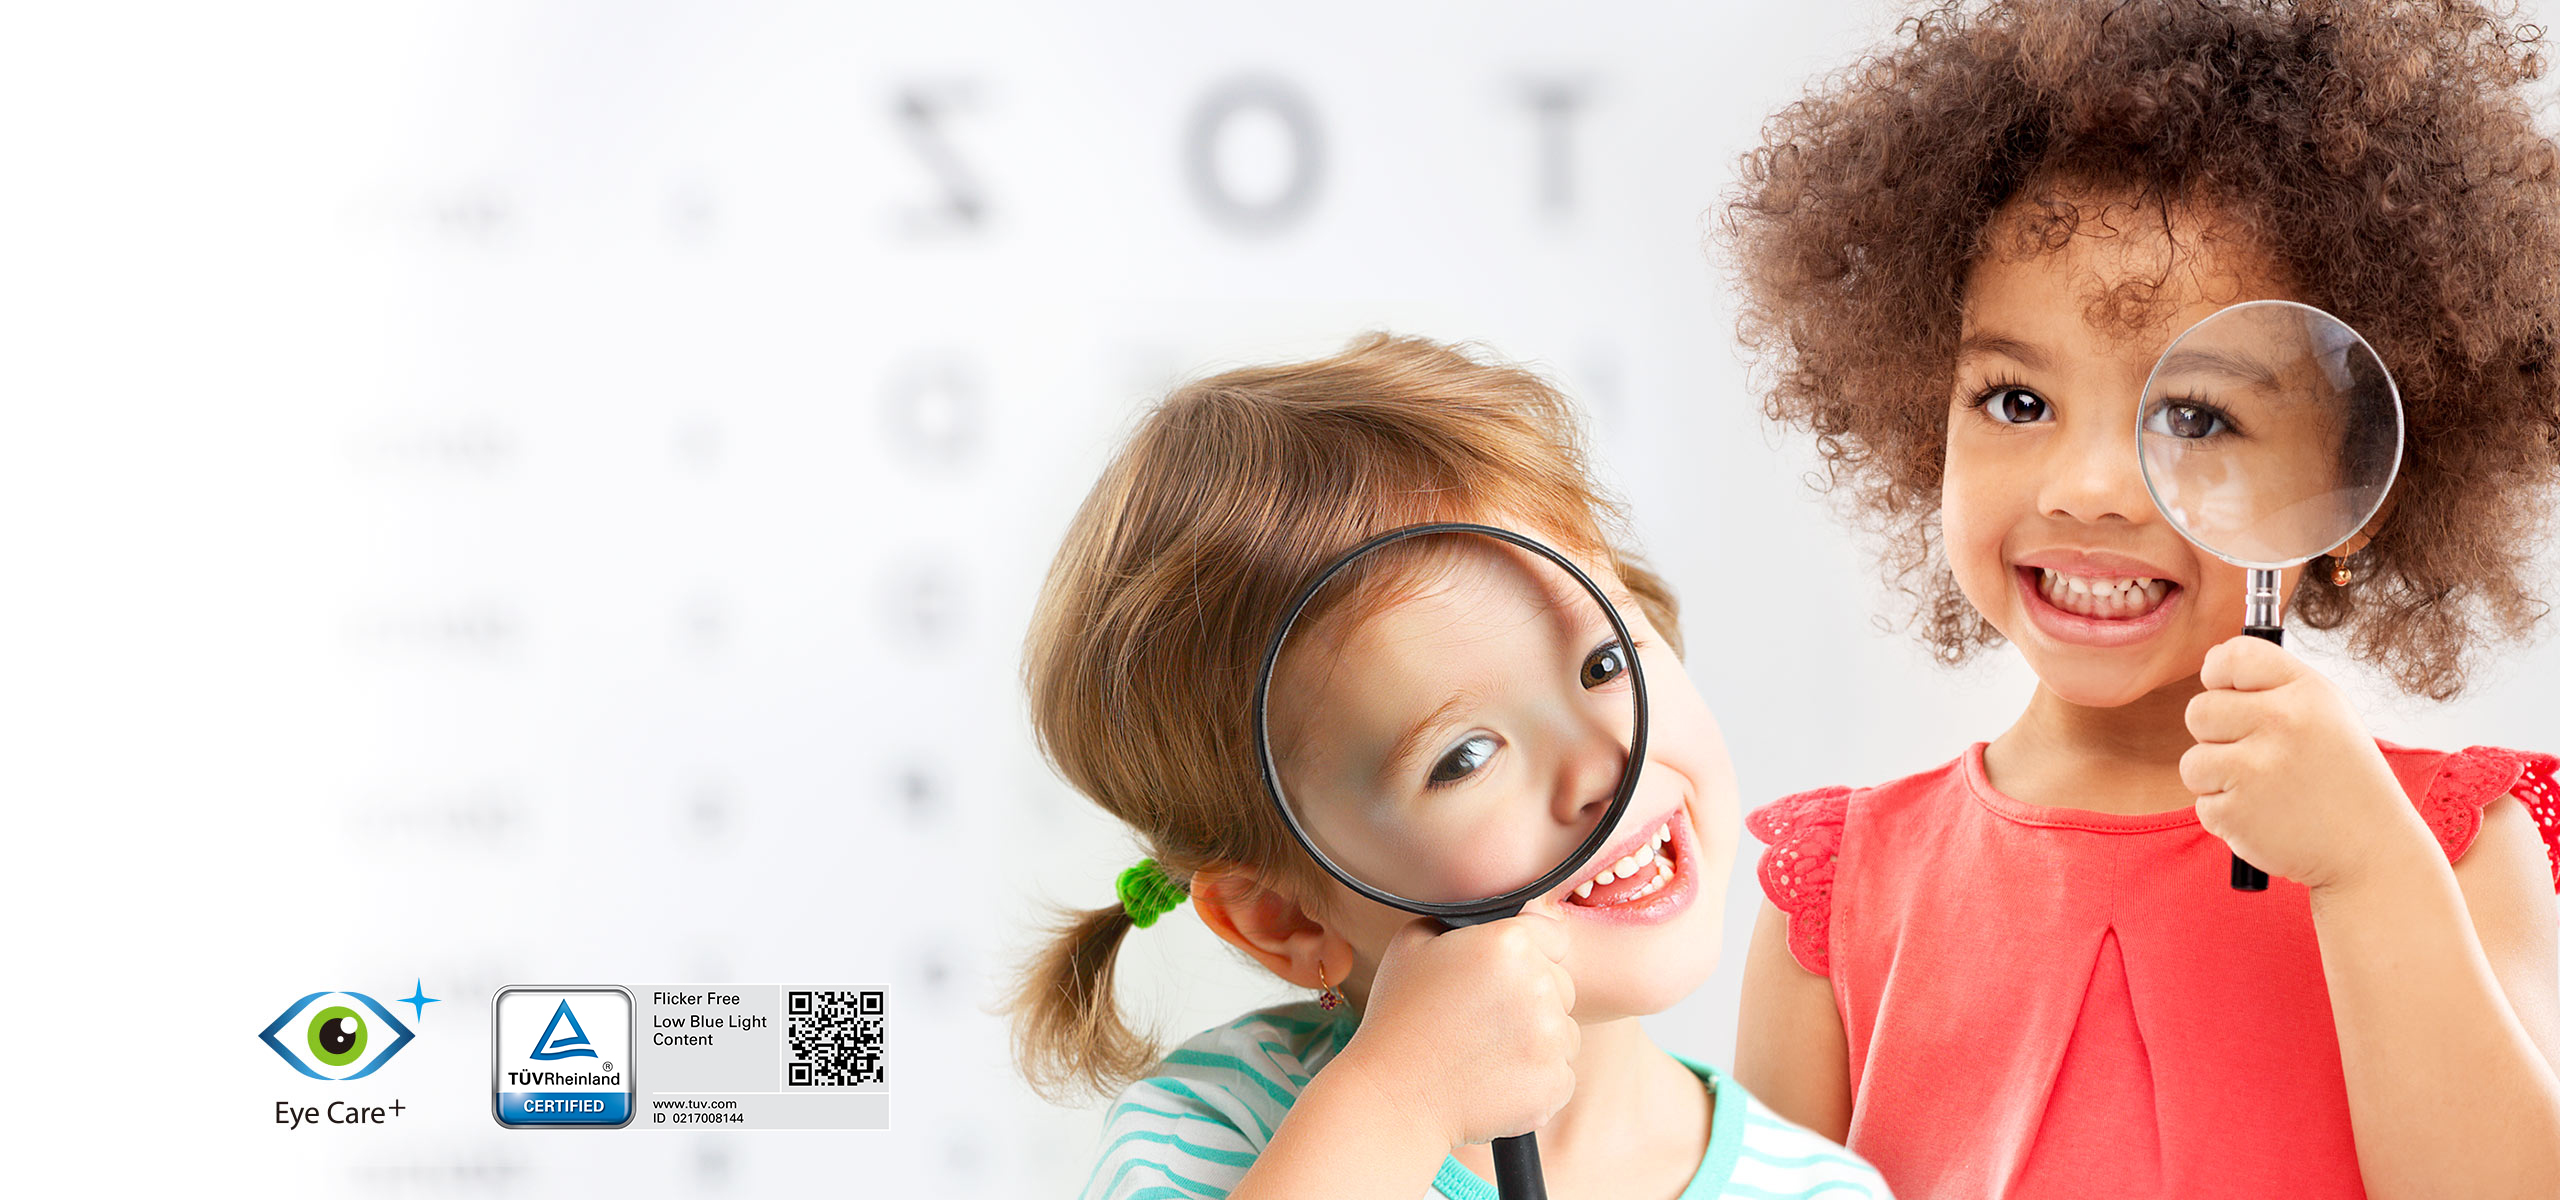 Protect your eyes with Eye Care+ technology